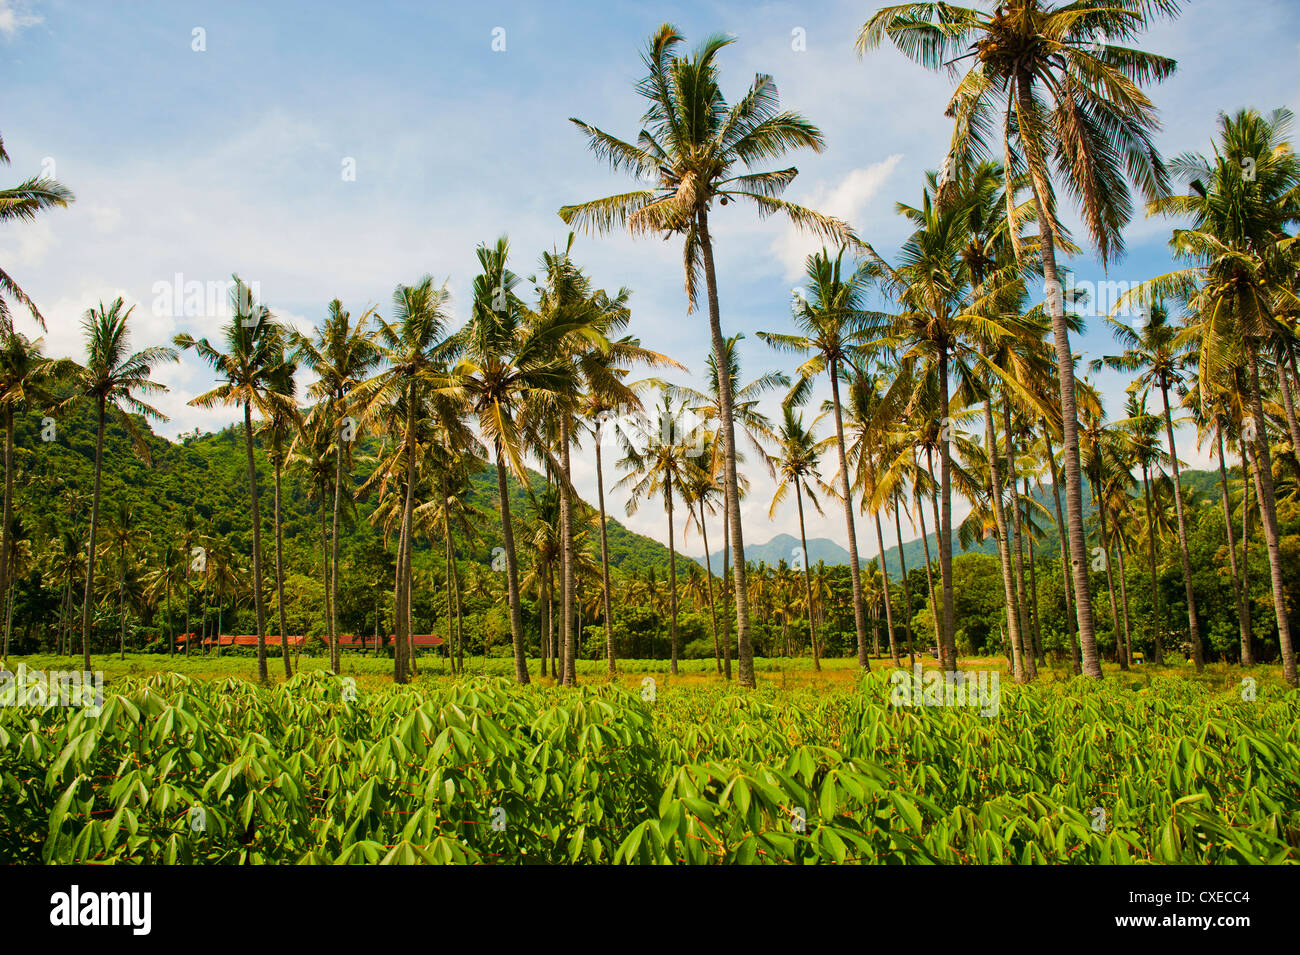 Tropical palm trees, Mangsit Beach, Lombok, Indonesia, Southeast Asia, Asia - Stock Image